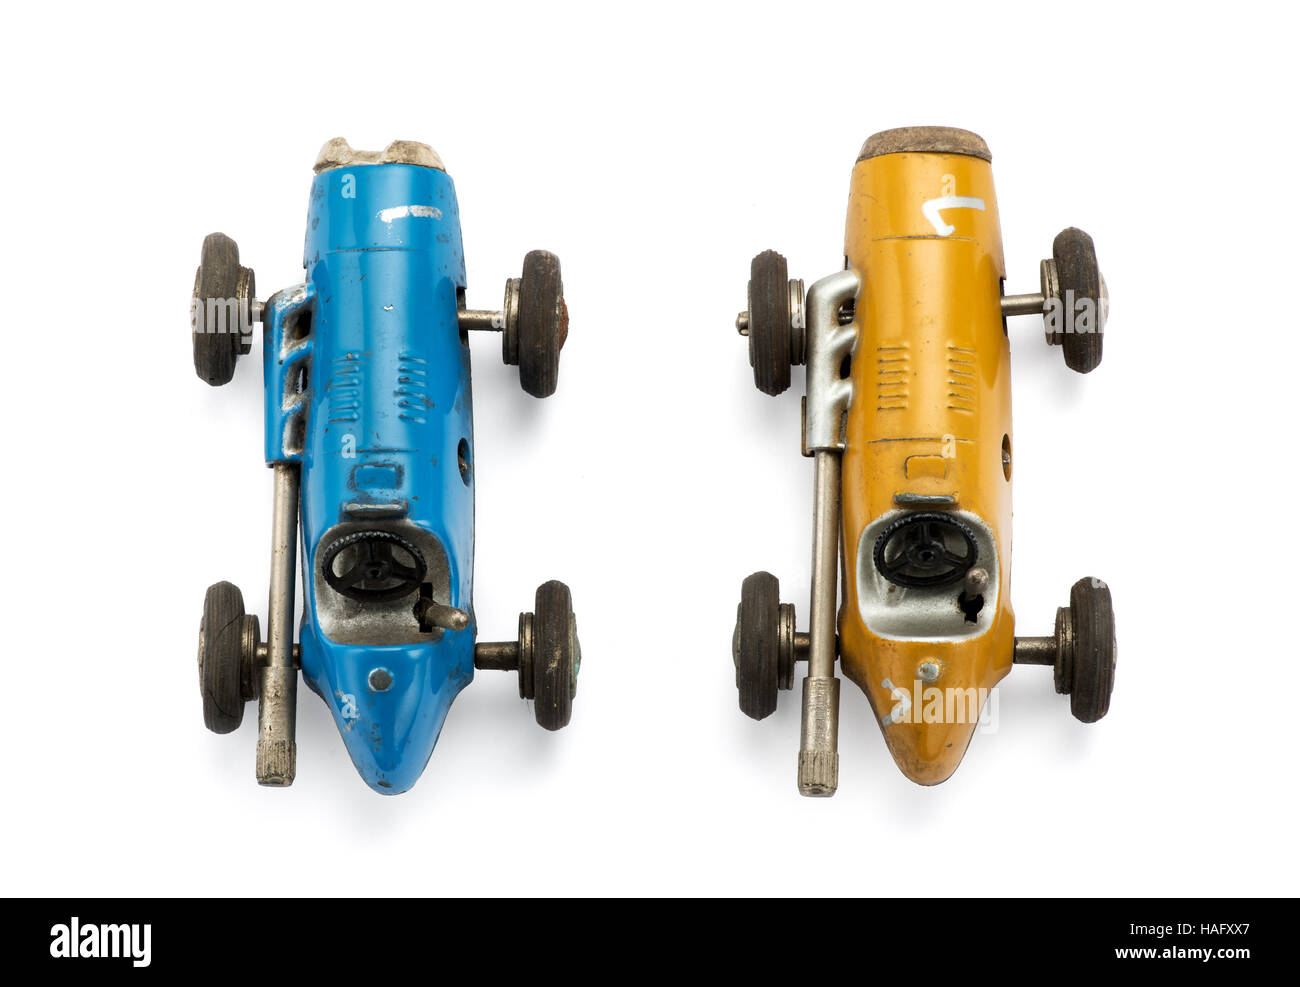 View from the top of two model vintage toy racing cars side by side in yellow and blue isolated on white - Stock Image